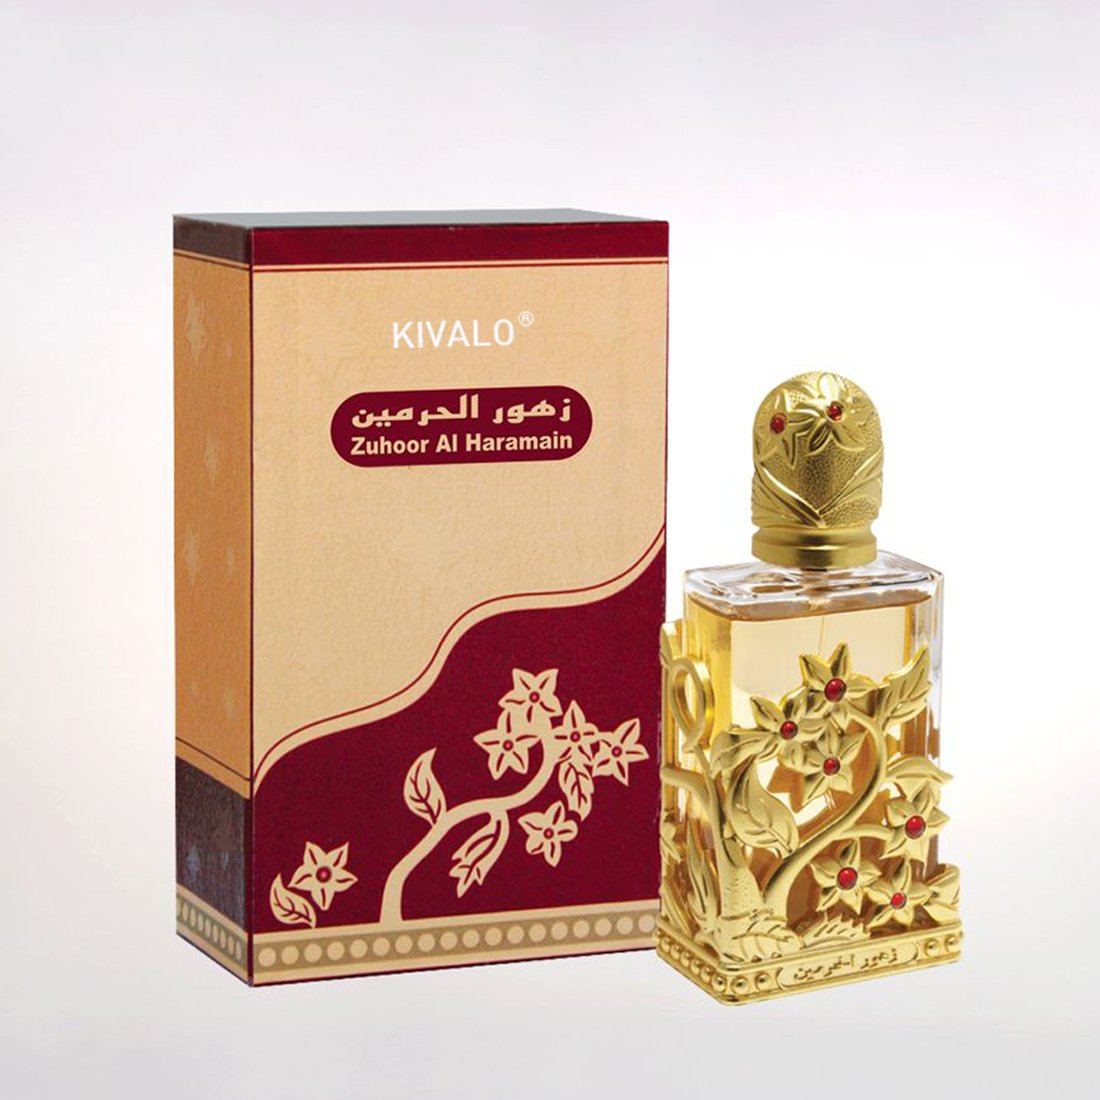 Al Haramain Zuhoor Spray - 65ml